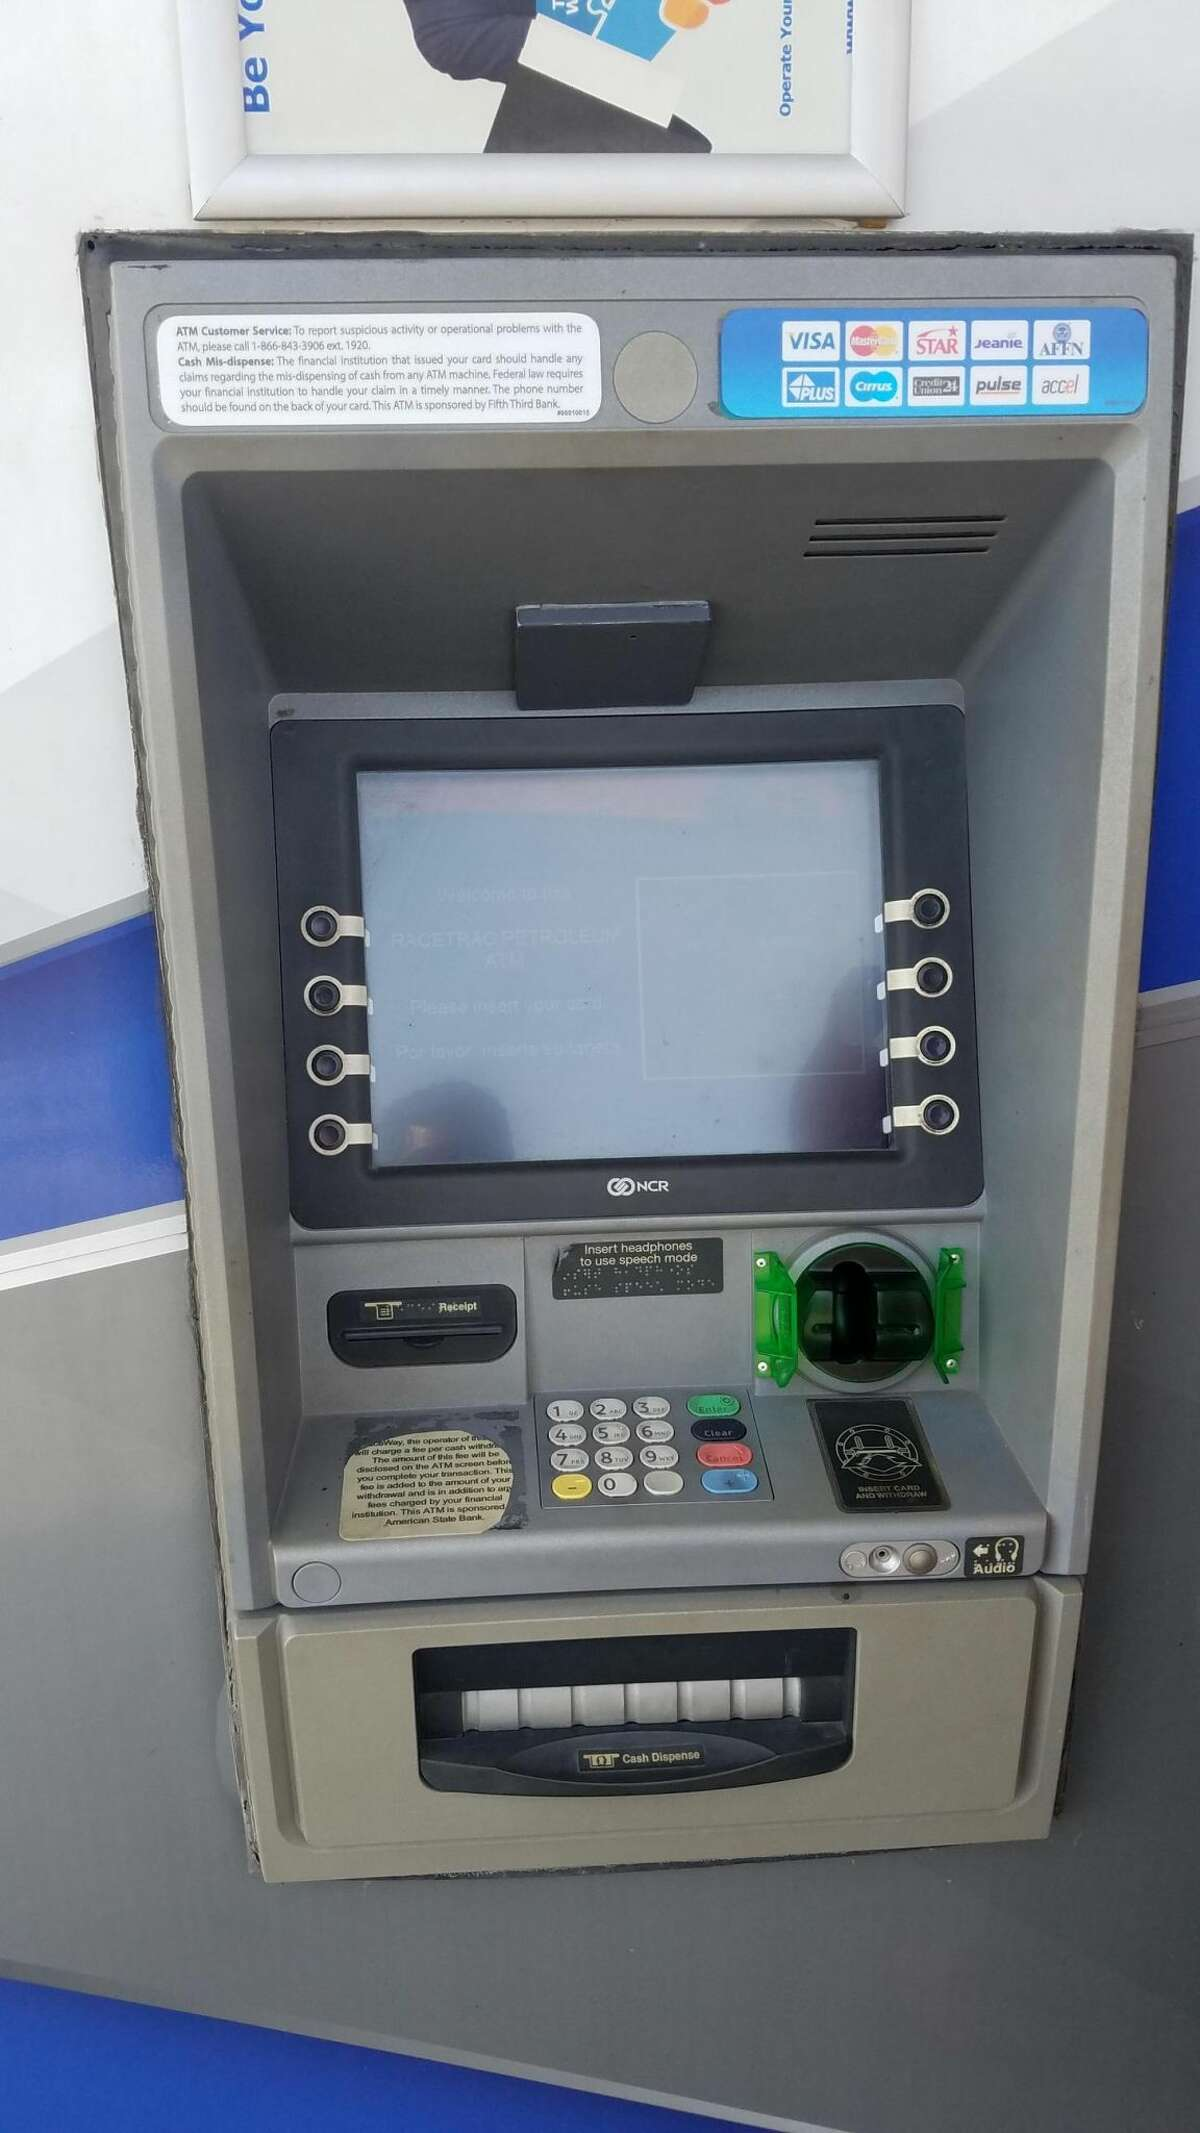 A theft device was allegedly spotted on an ATM machine in northwest Houston Thursday, Dec. 29, 2016.